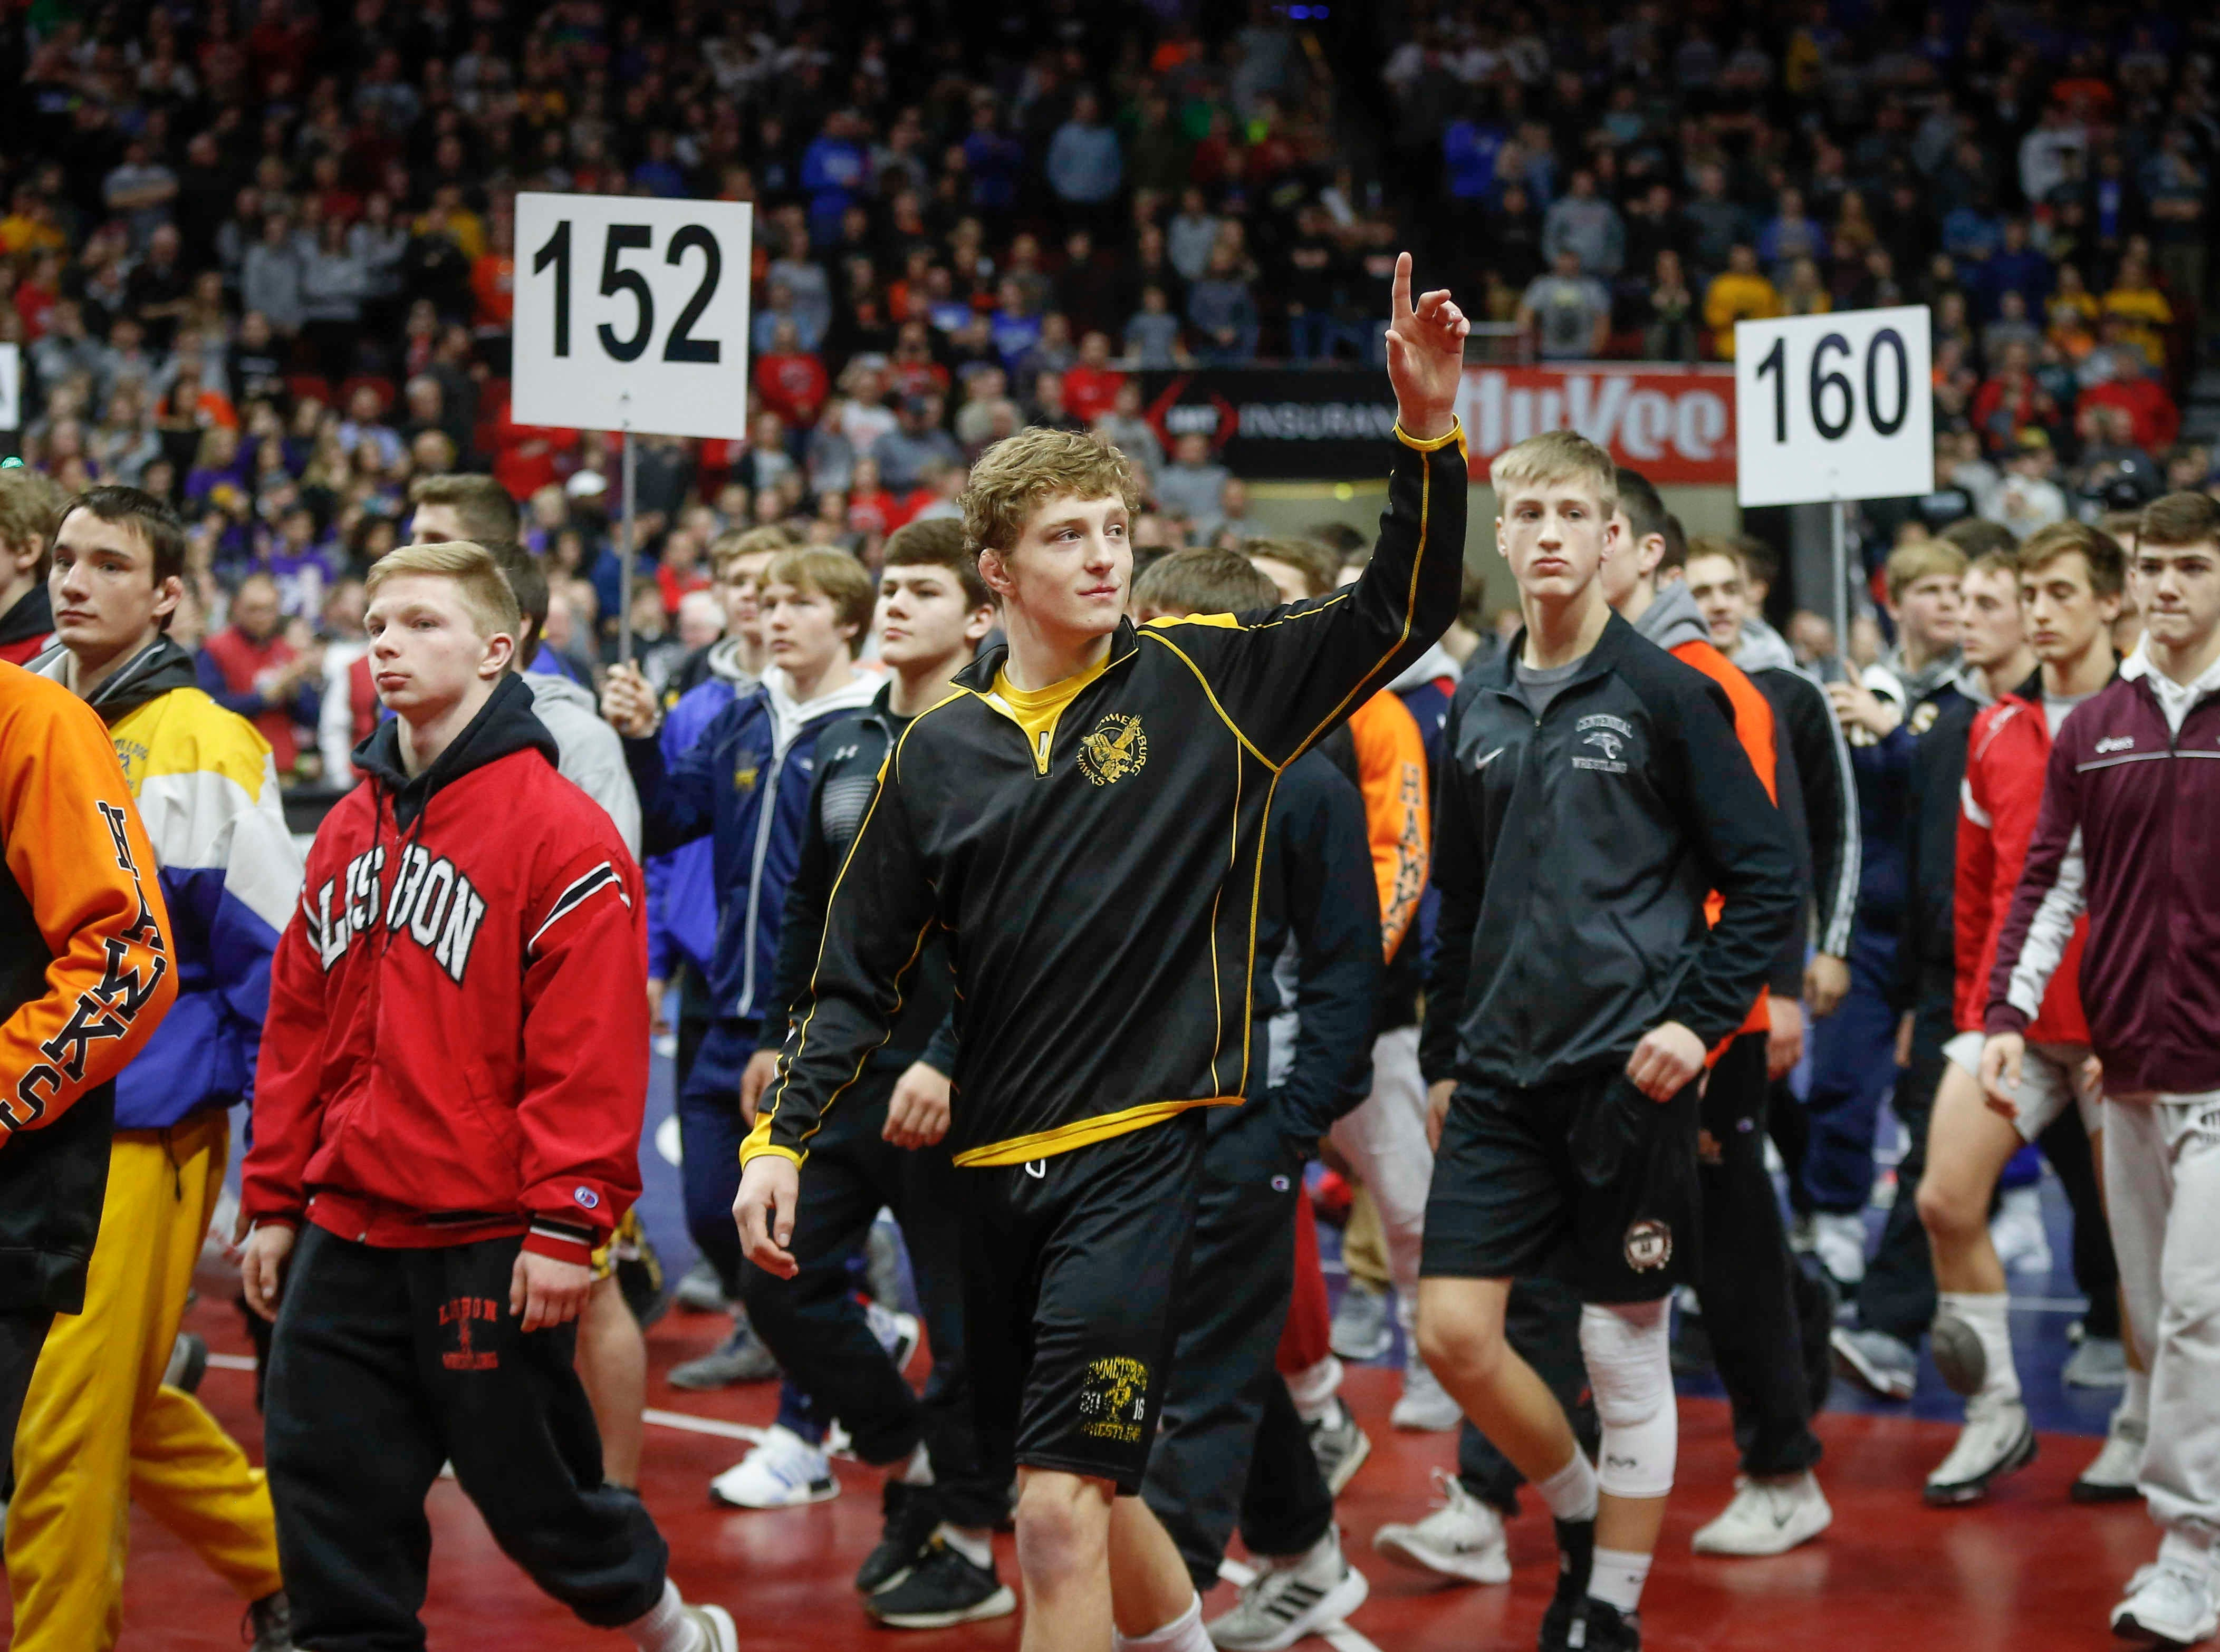 Wrestlers take the mat for the Grand March prior to the start of the 2019 Iowa high school wrestling championship matches on Saturday, Feb. 16, 2019, at Wells Fargo Arena in Des Moines.